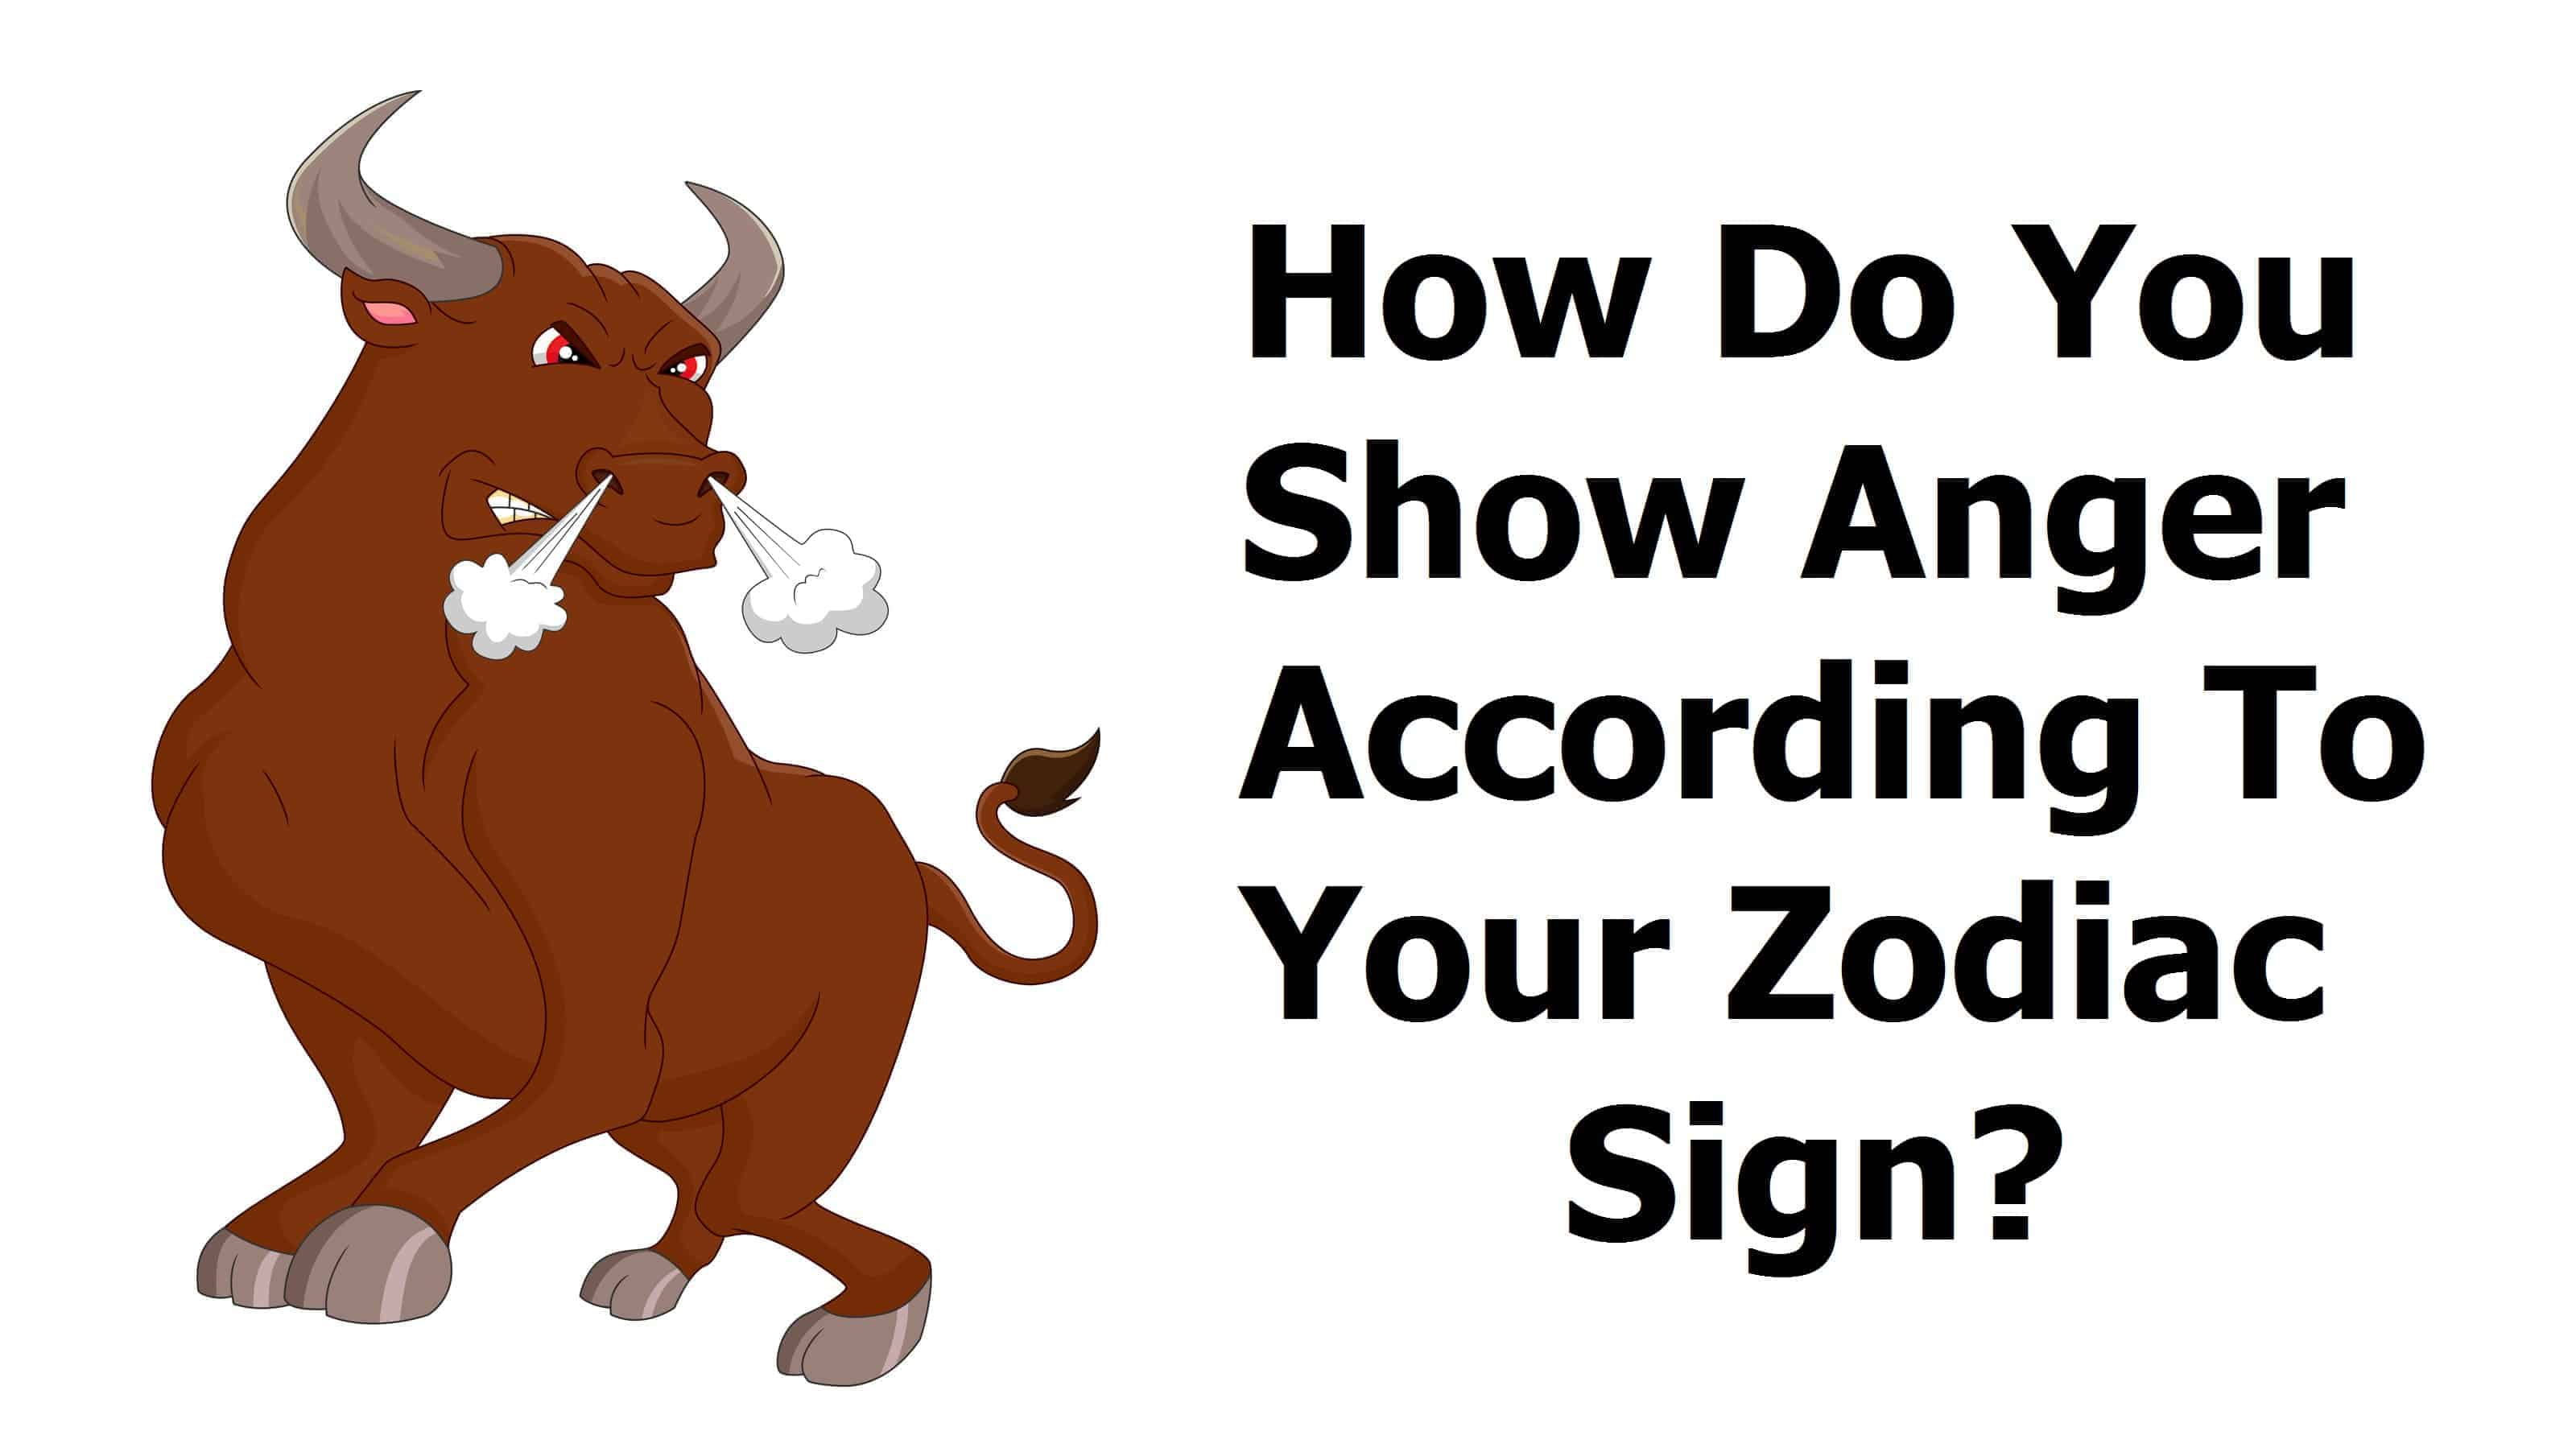 How Do You Show Anger According To Your Zodiac Sign